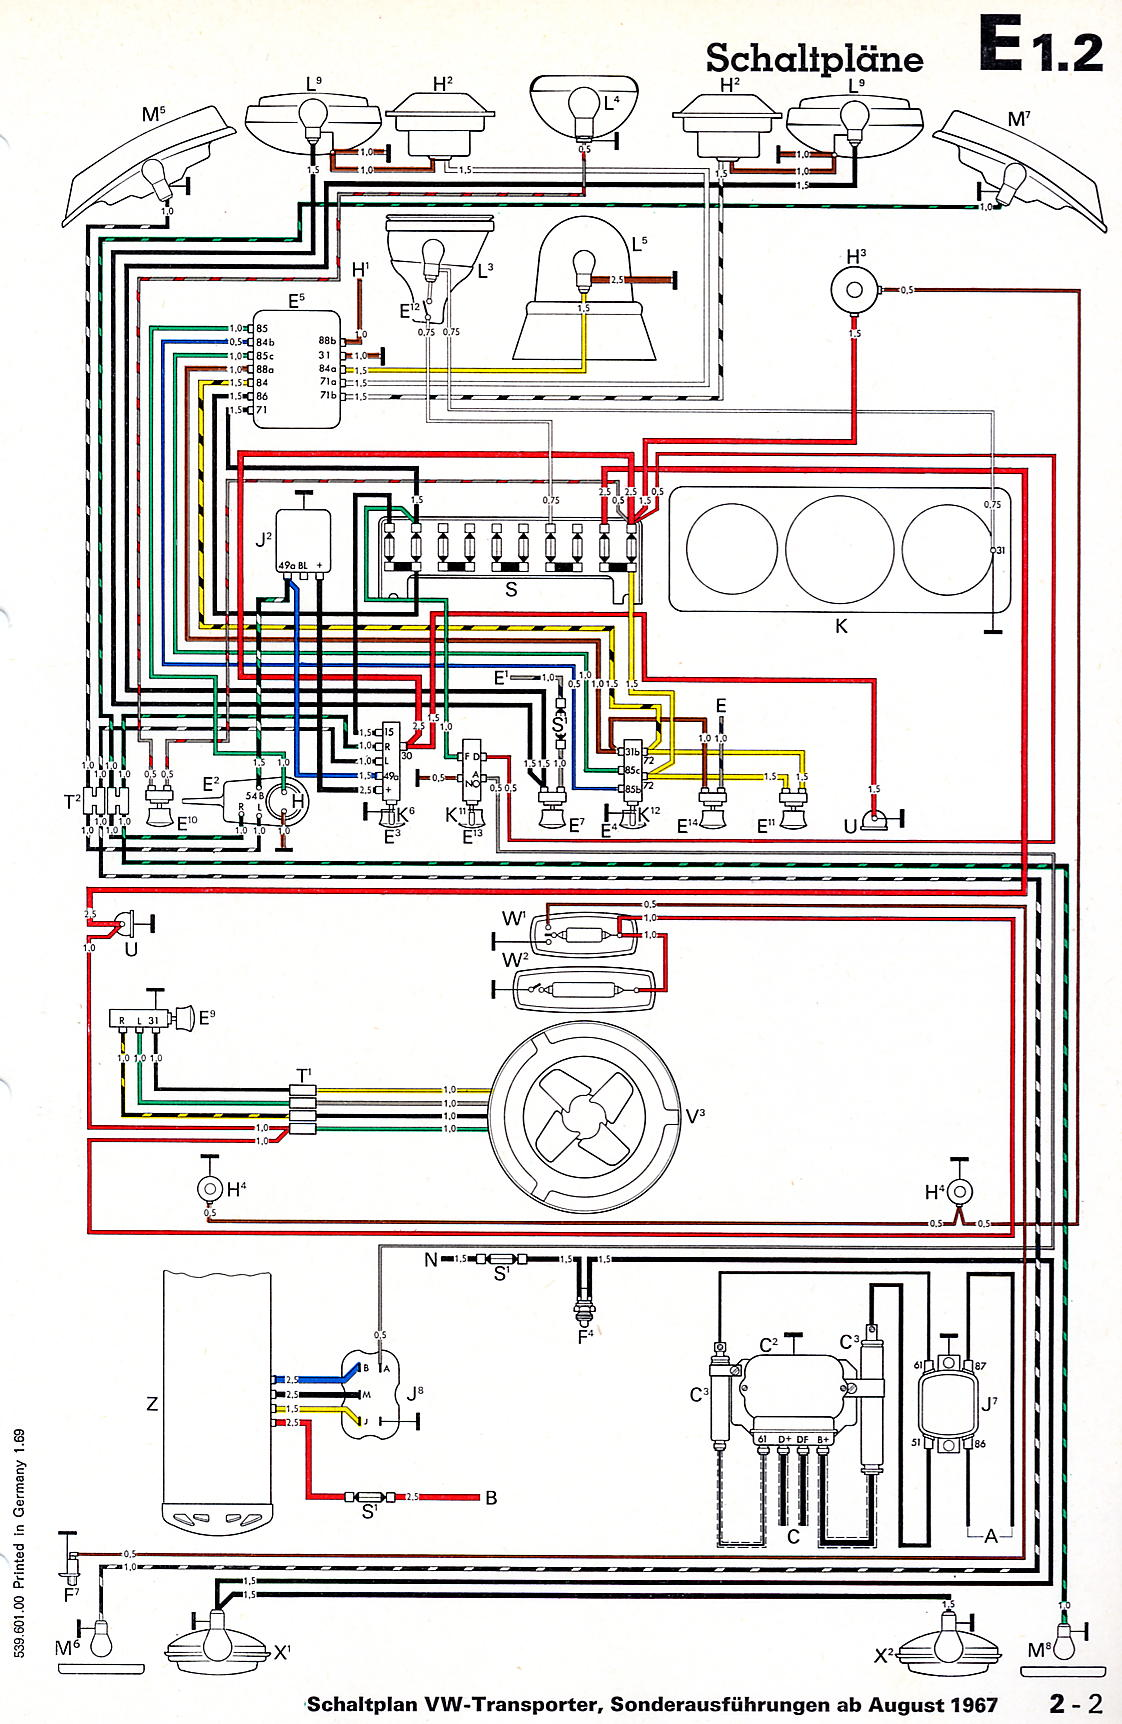 early model t wiring diagram wiring library model a wiring diagram wiring diagram